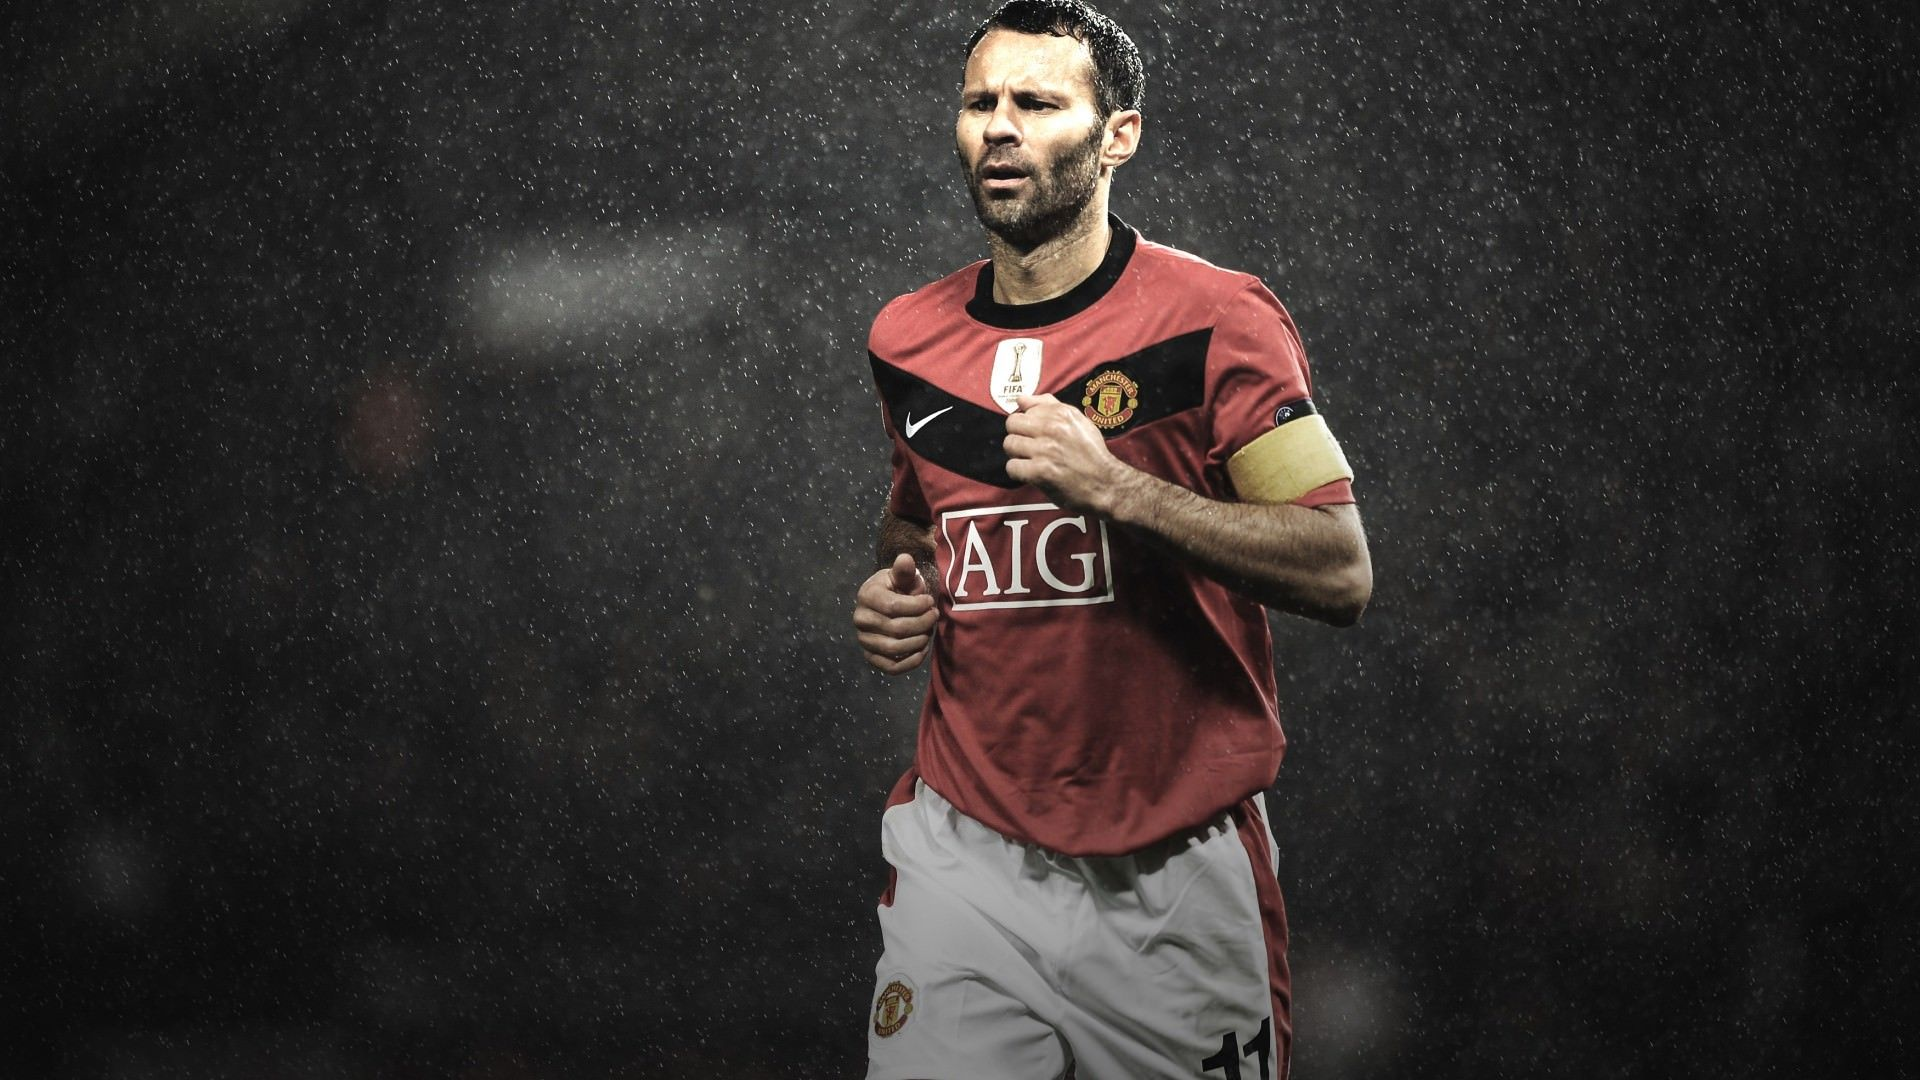 ryan giggs manchester united legend wallpaper | football